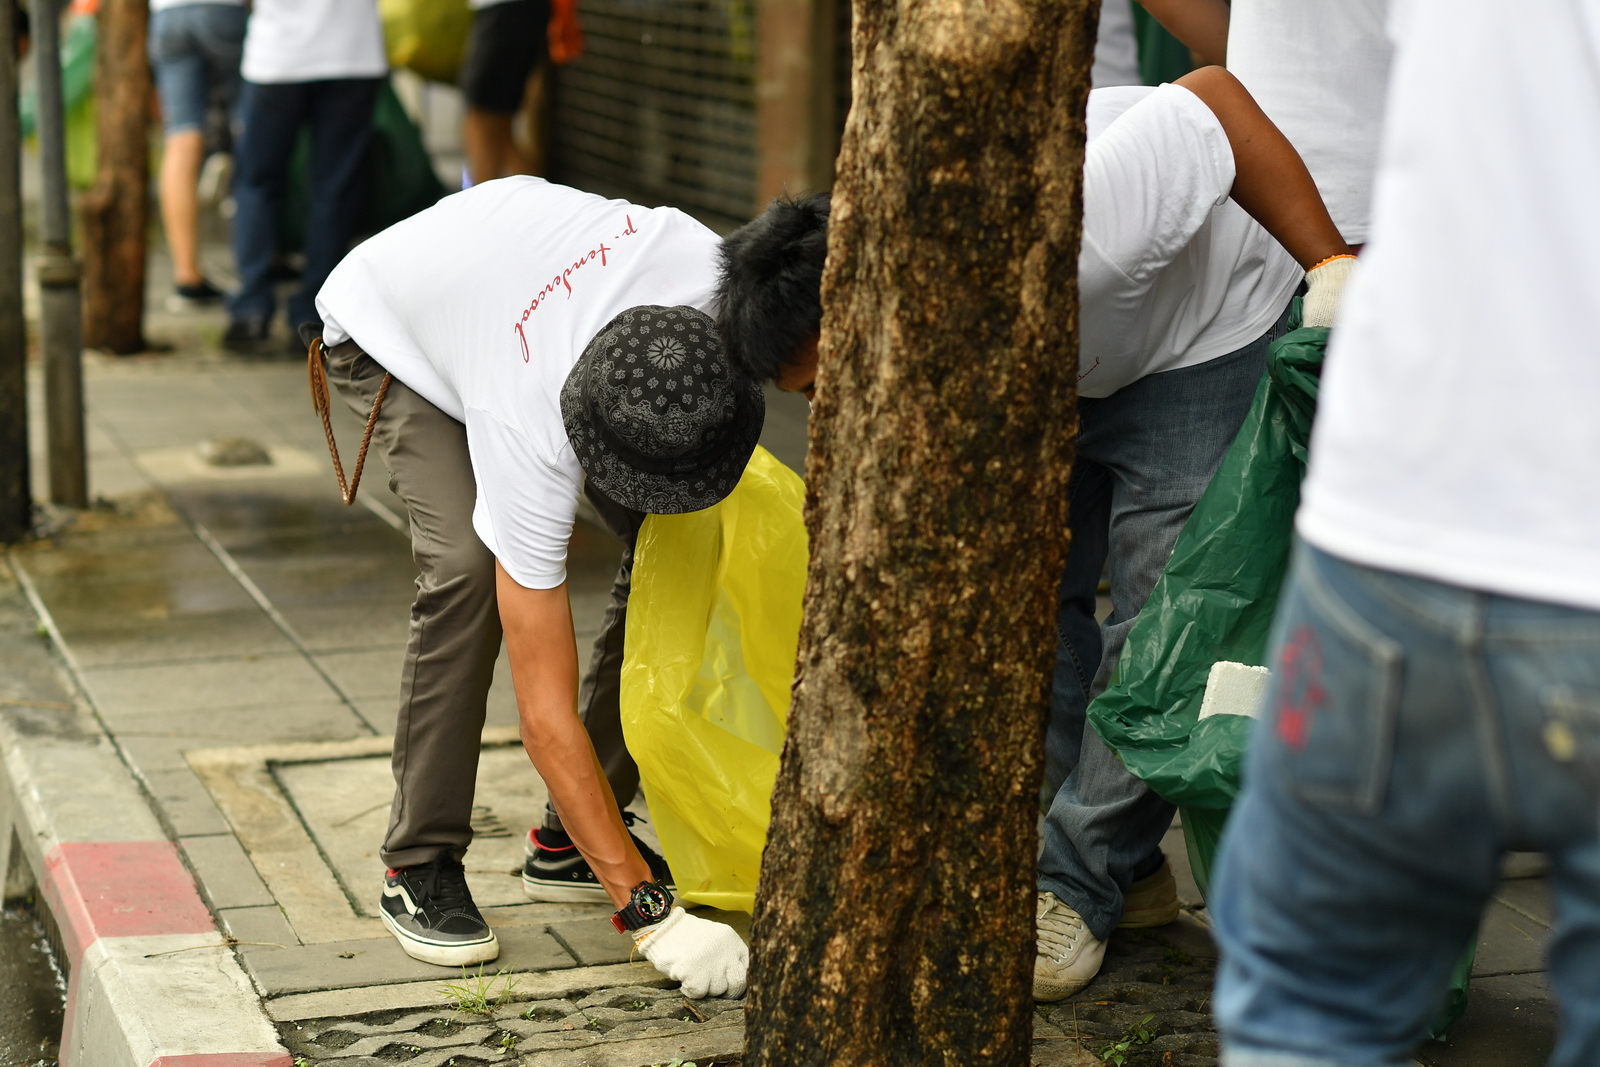 PTendercool-Event-Clean Up The World-190921-113